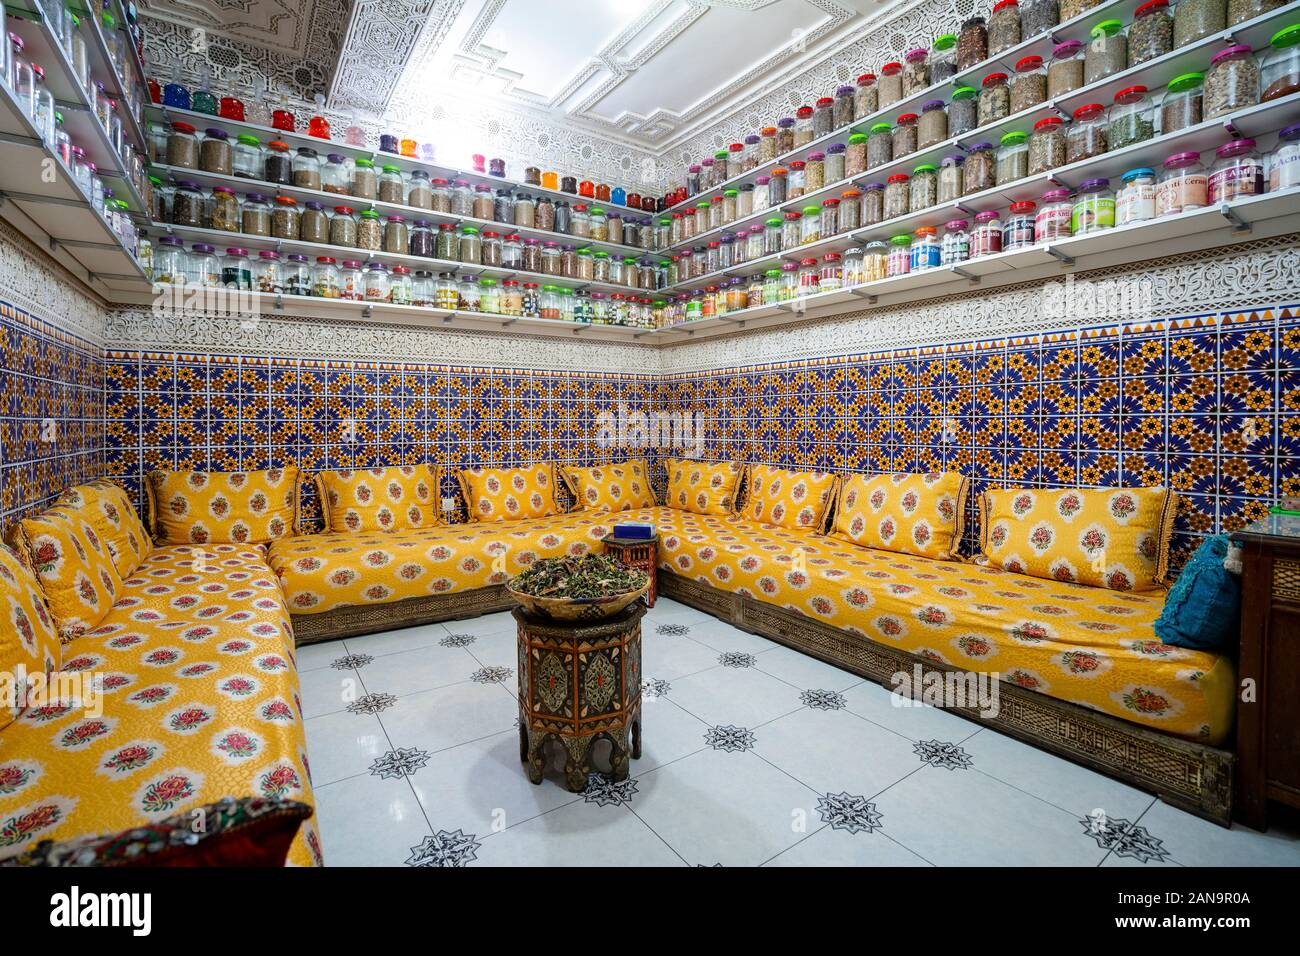 Moroccan interior with variety of spices on shelves and herbal tea in the middle of the room Stock Photo